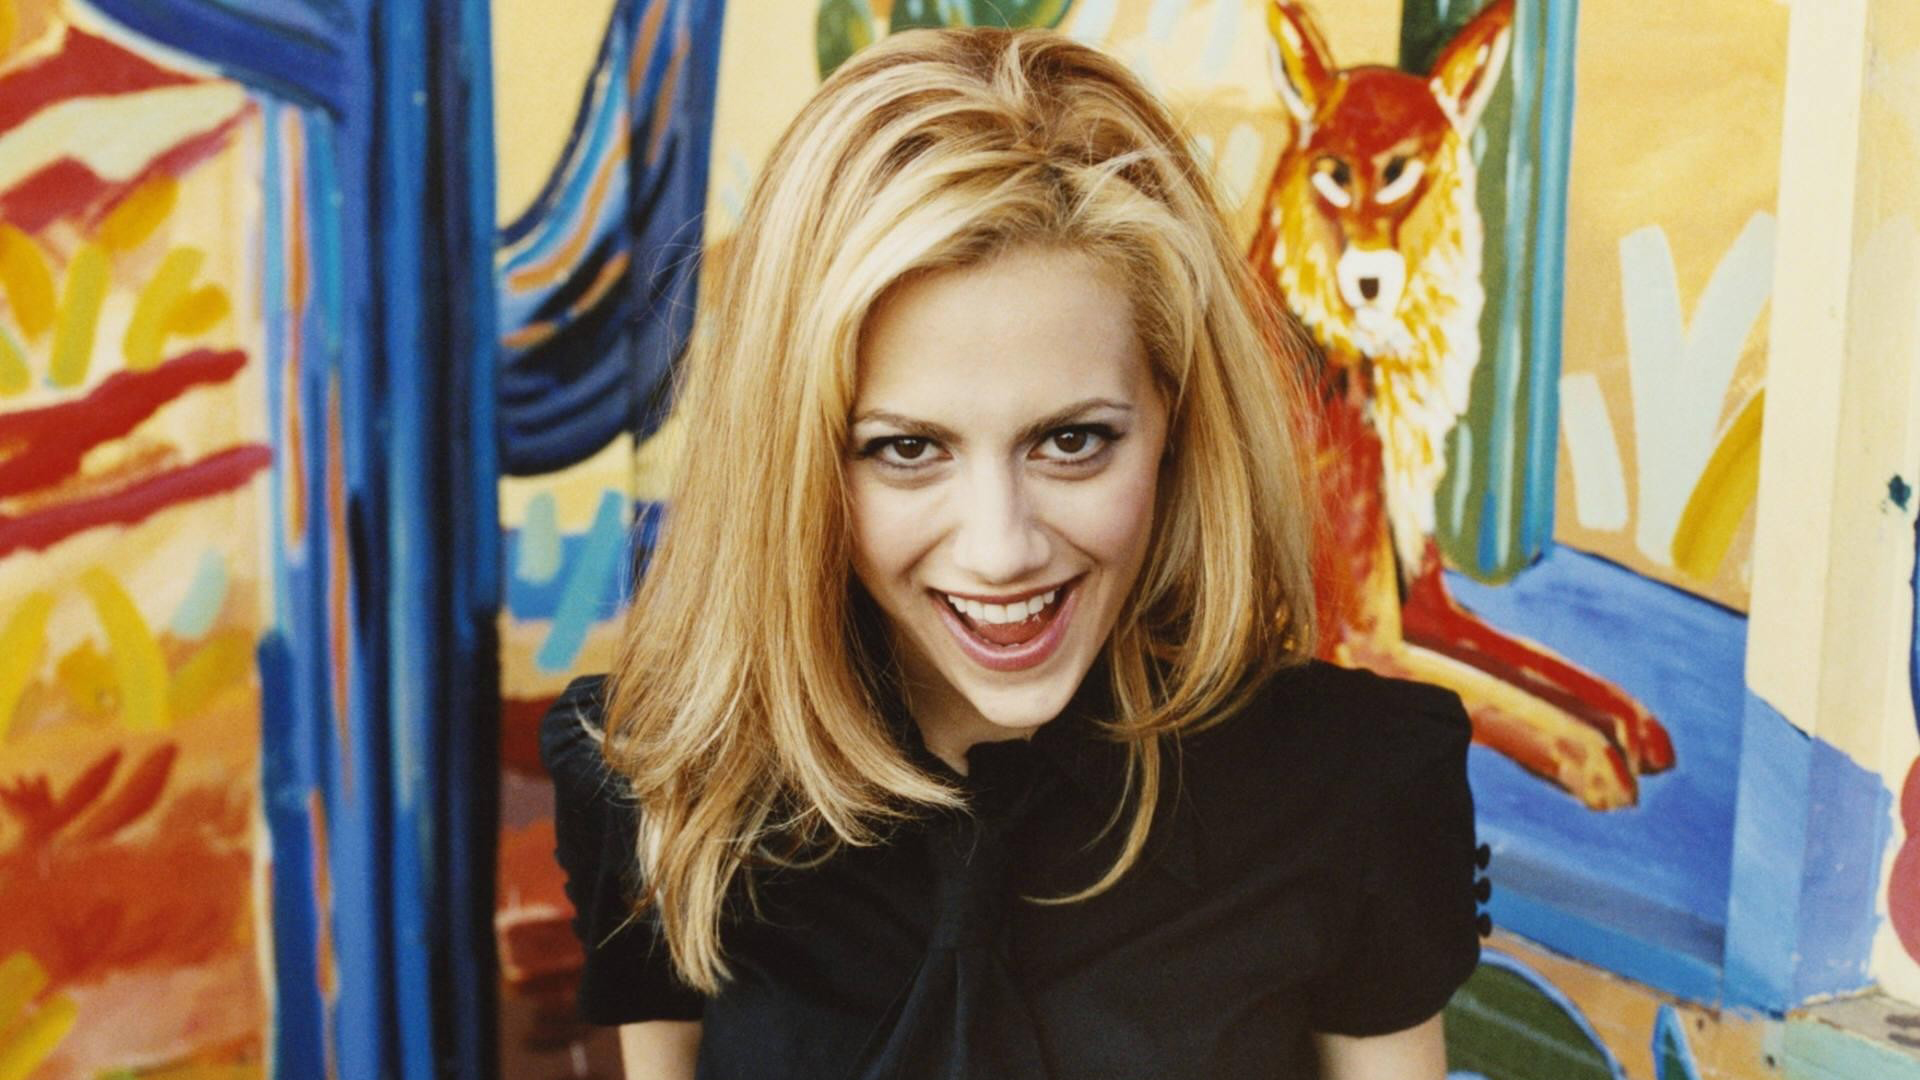 brittany murphy desktop wallpaper 52714